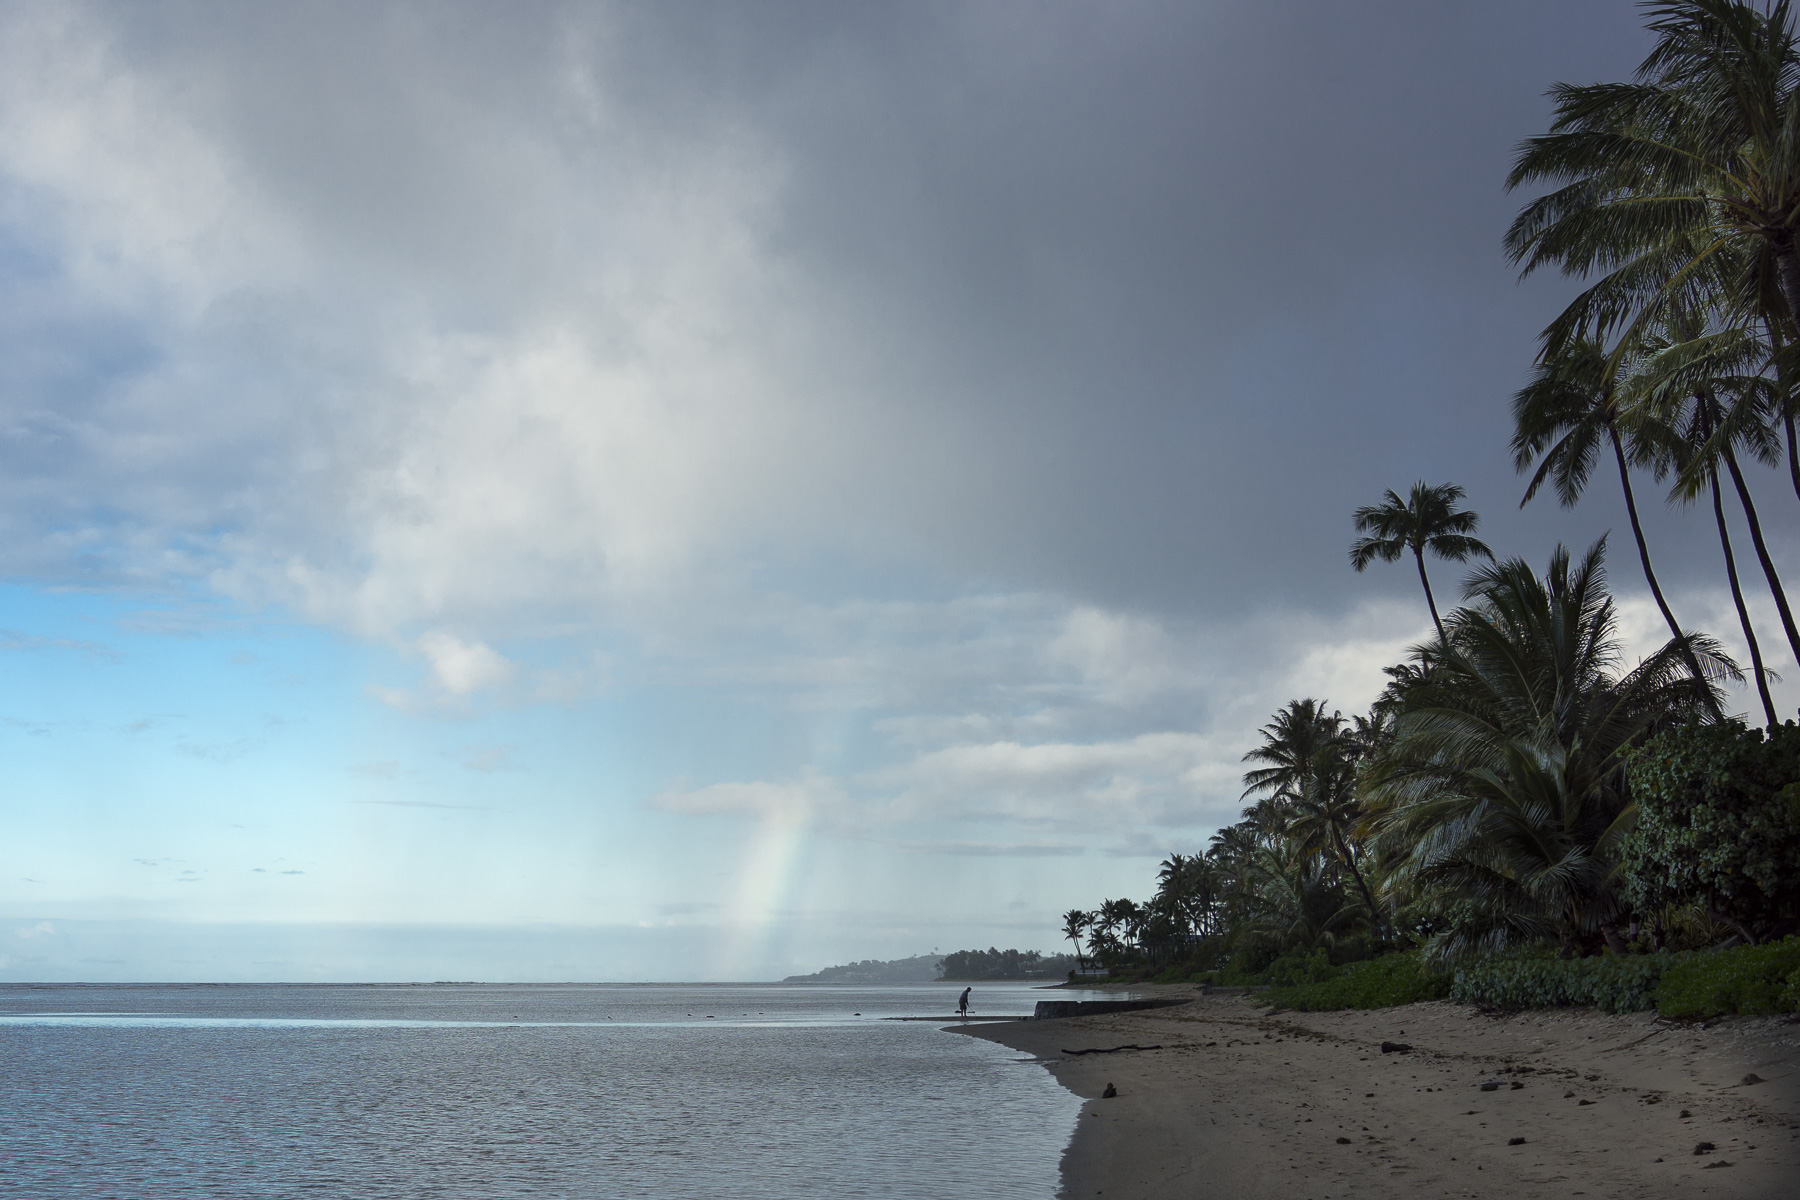 Today in Kahala